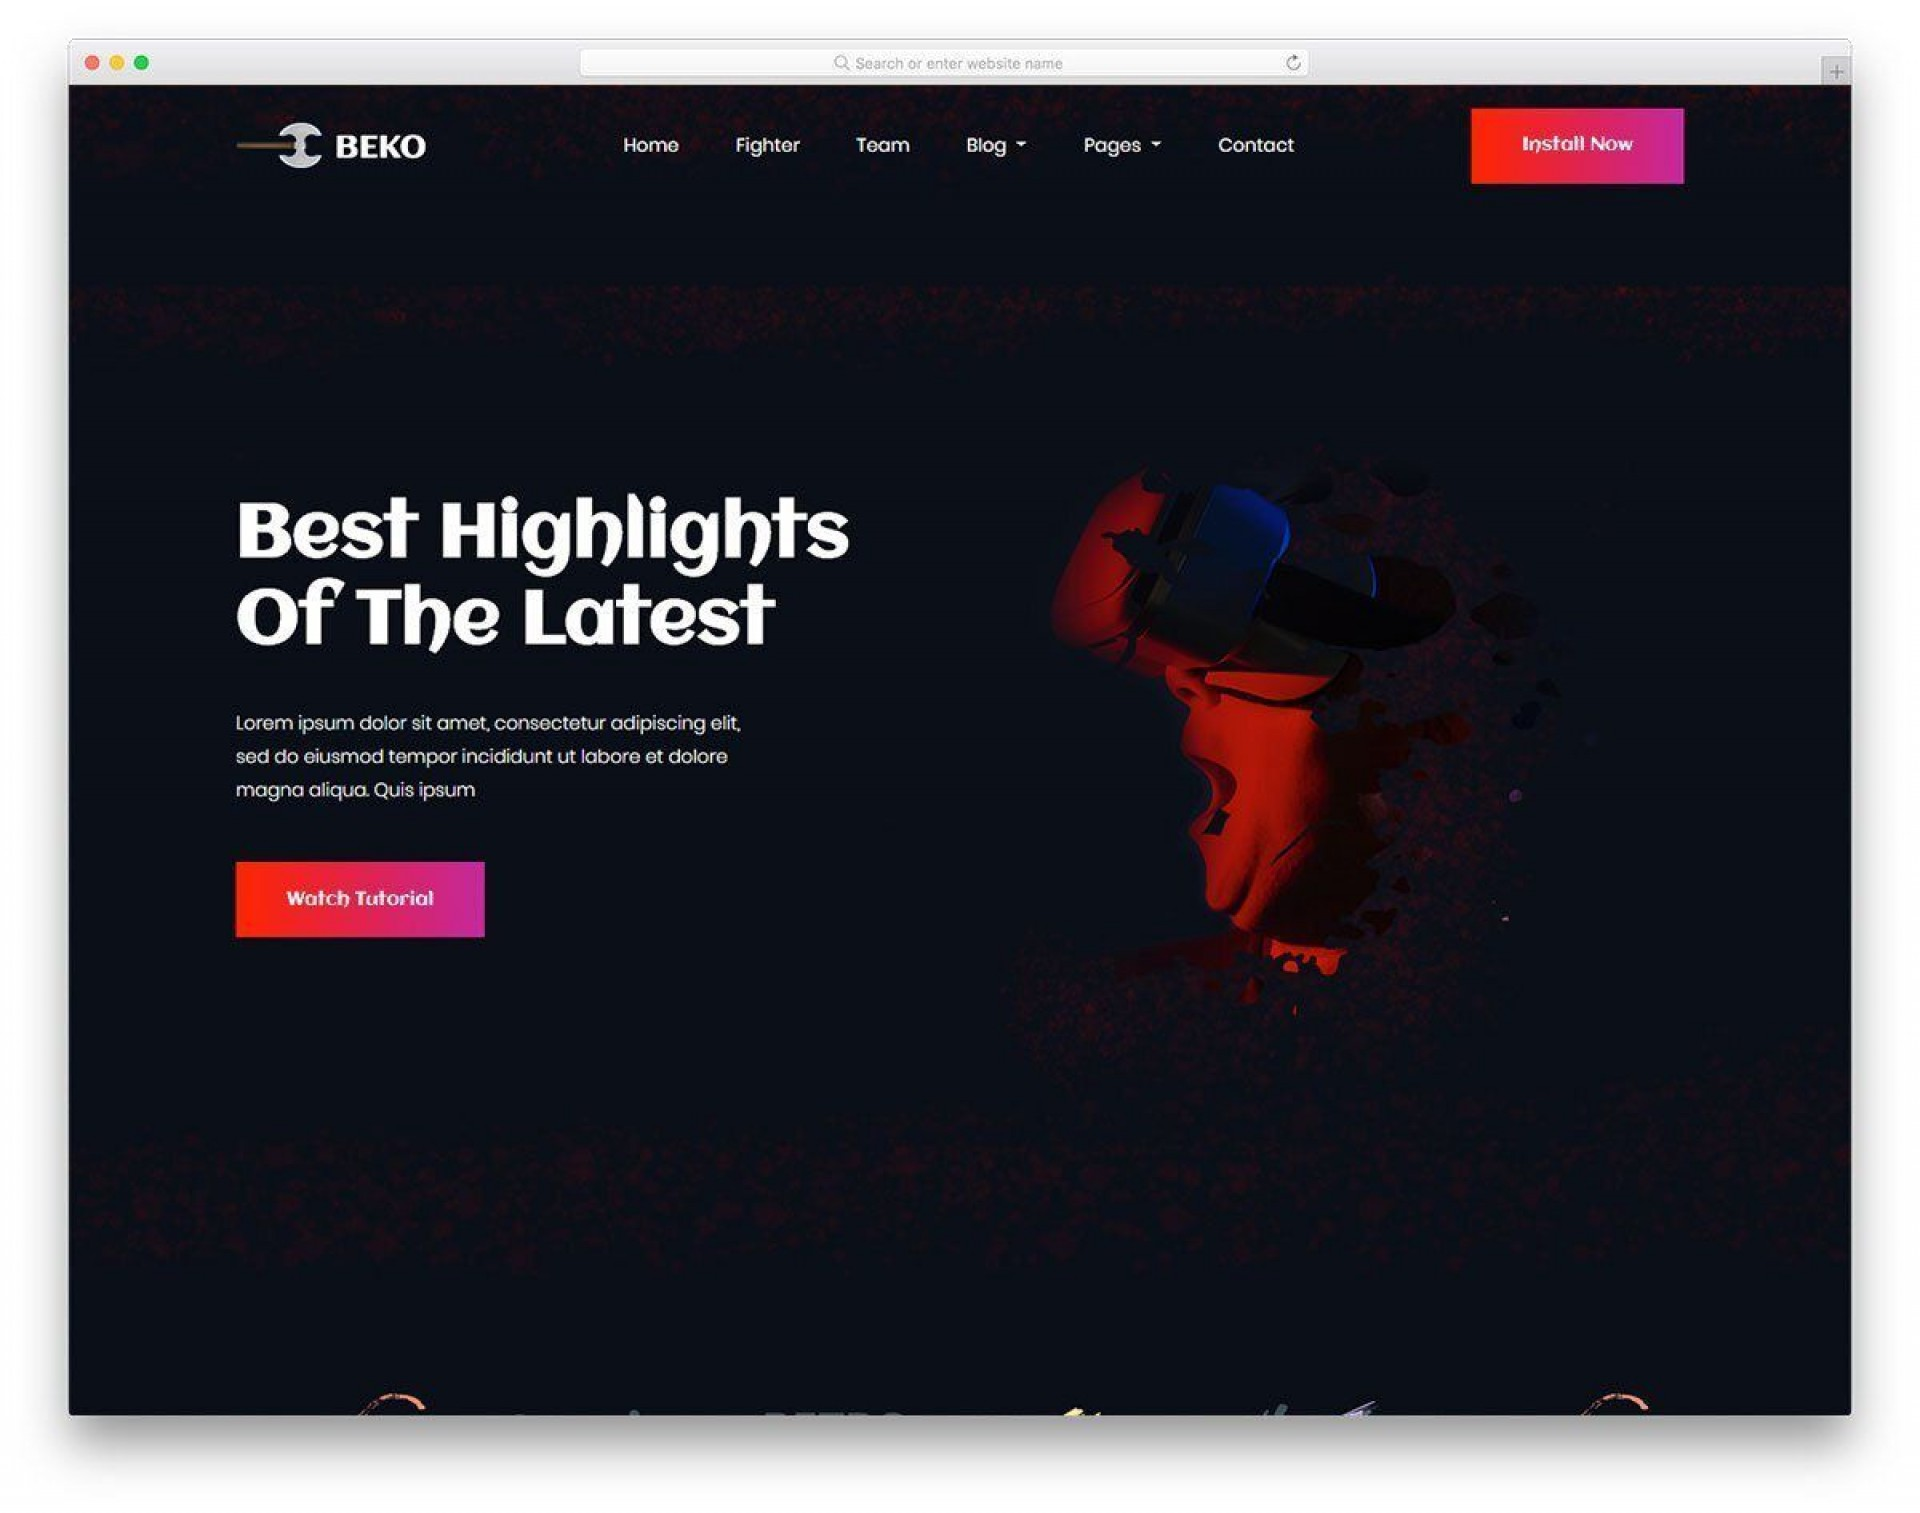 002 Awesome Web Page Design Template Cs Idea  Css1920